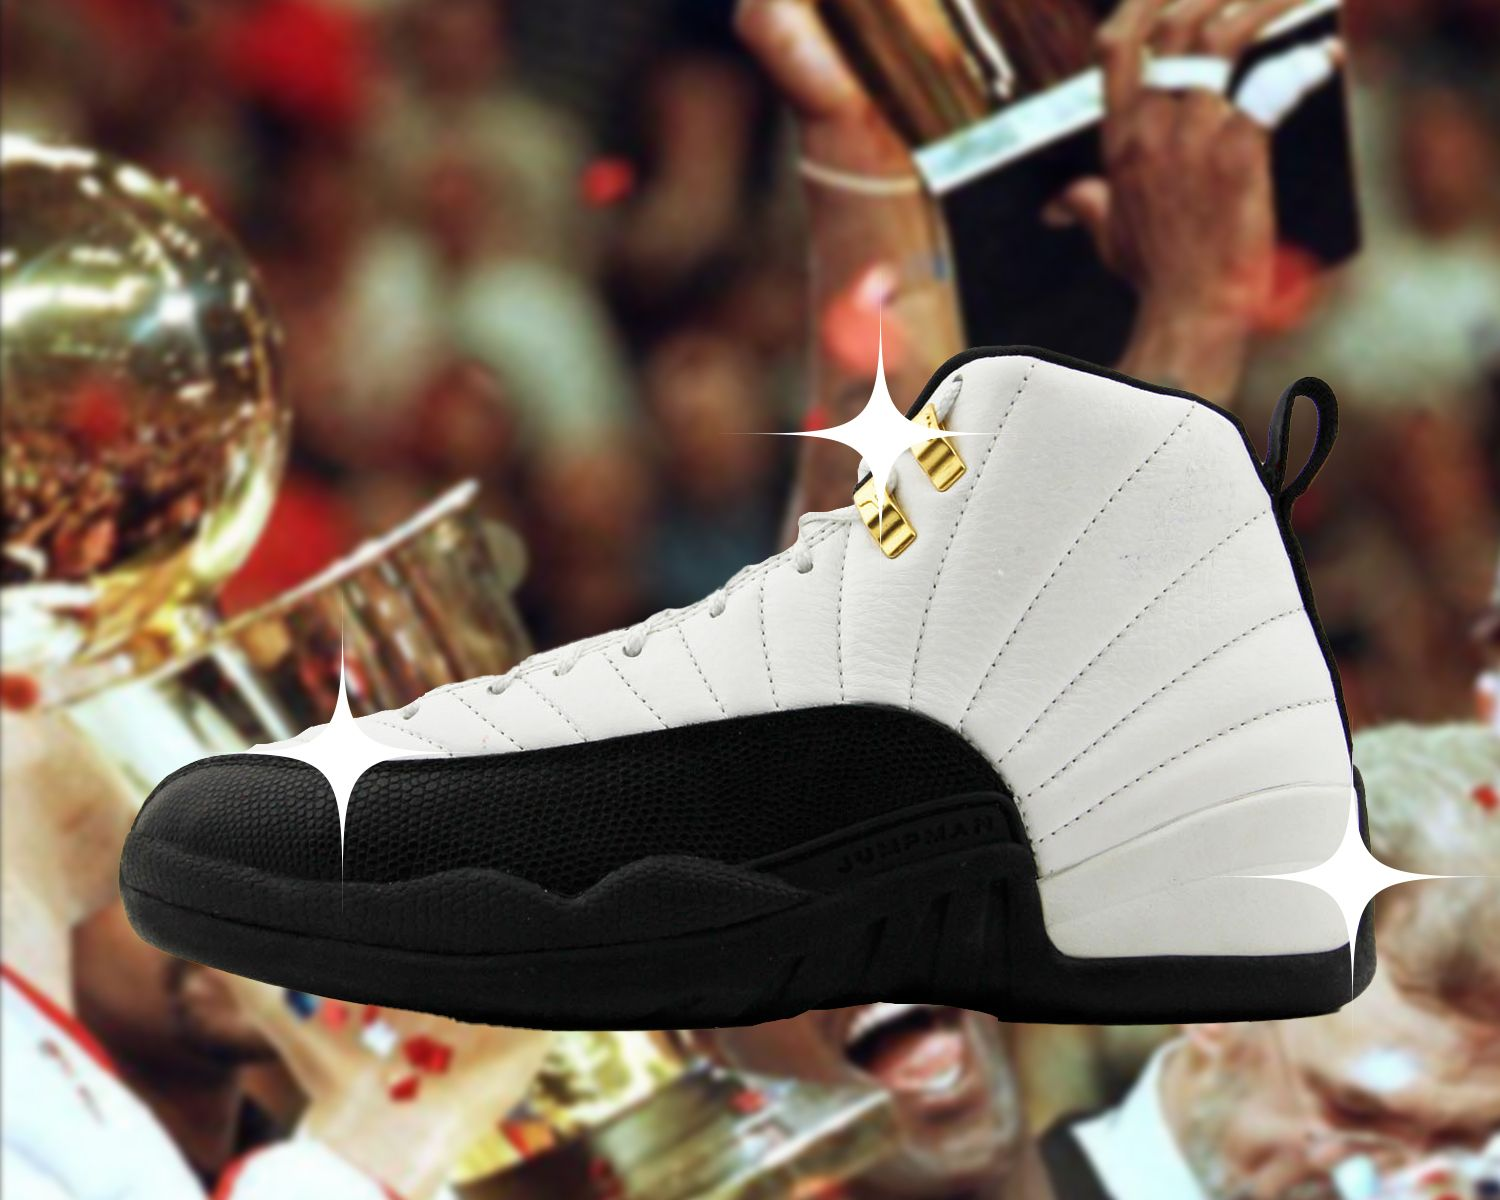 The 6 Sneakers Michael Jordan Wore When He Became a Champion 20